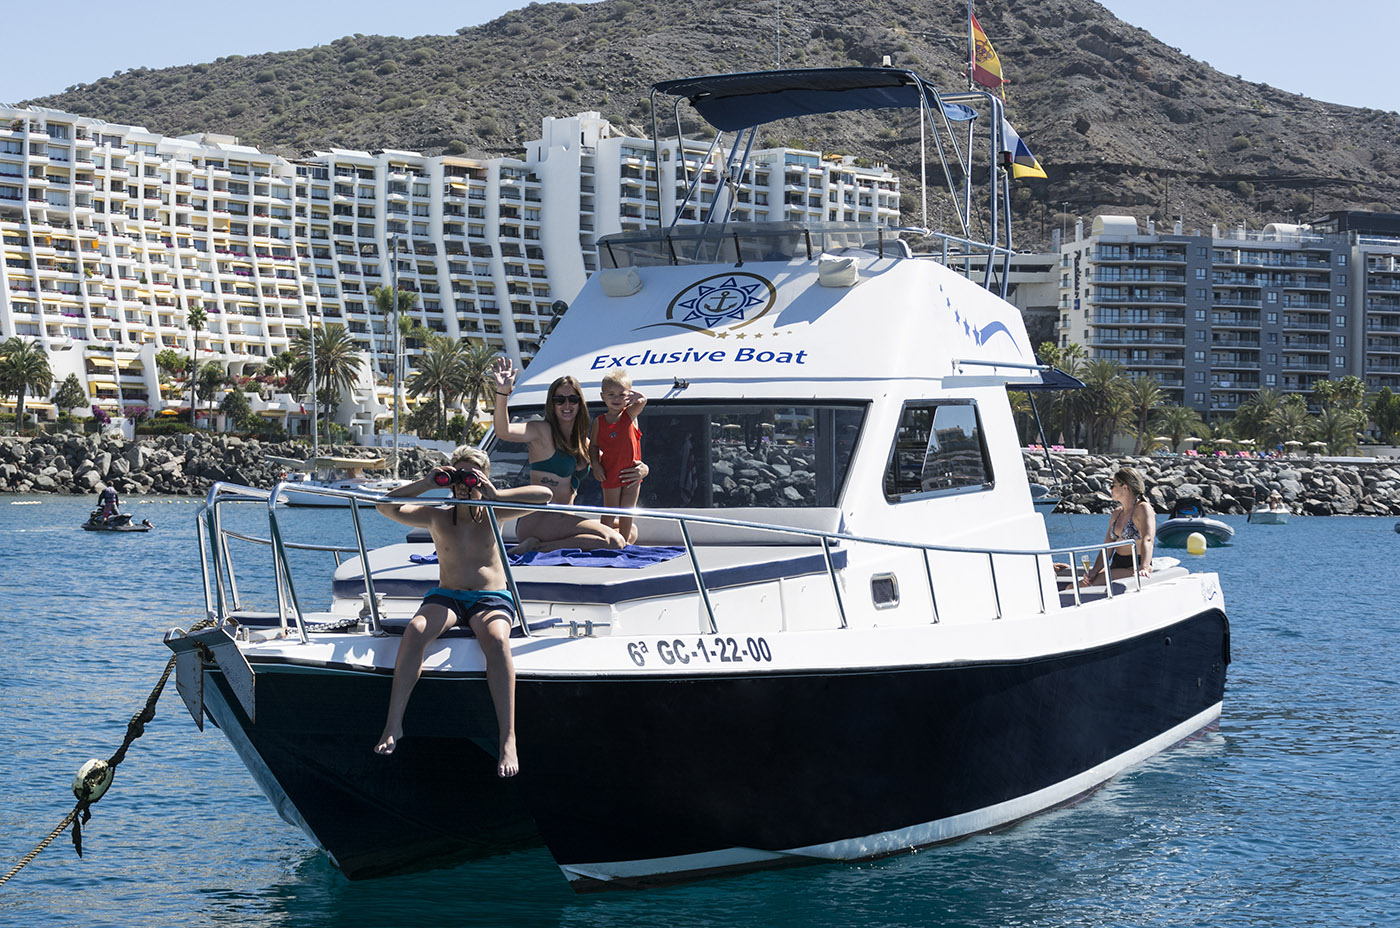 Yacht Excursion in Canarias